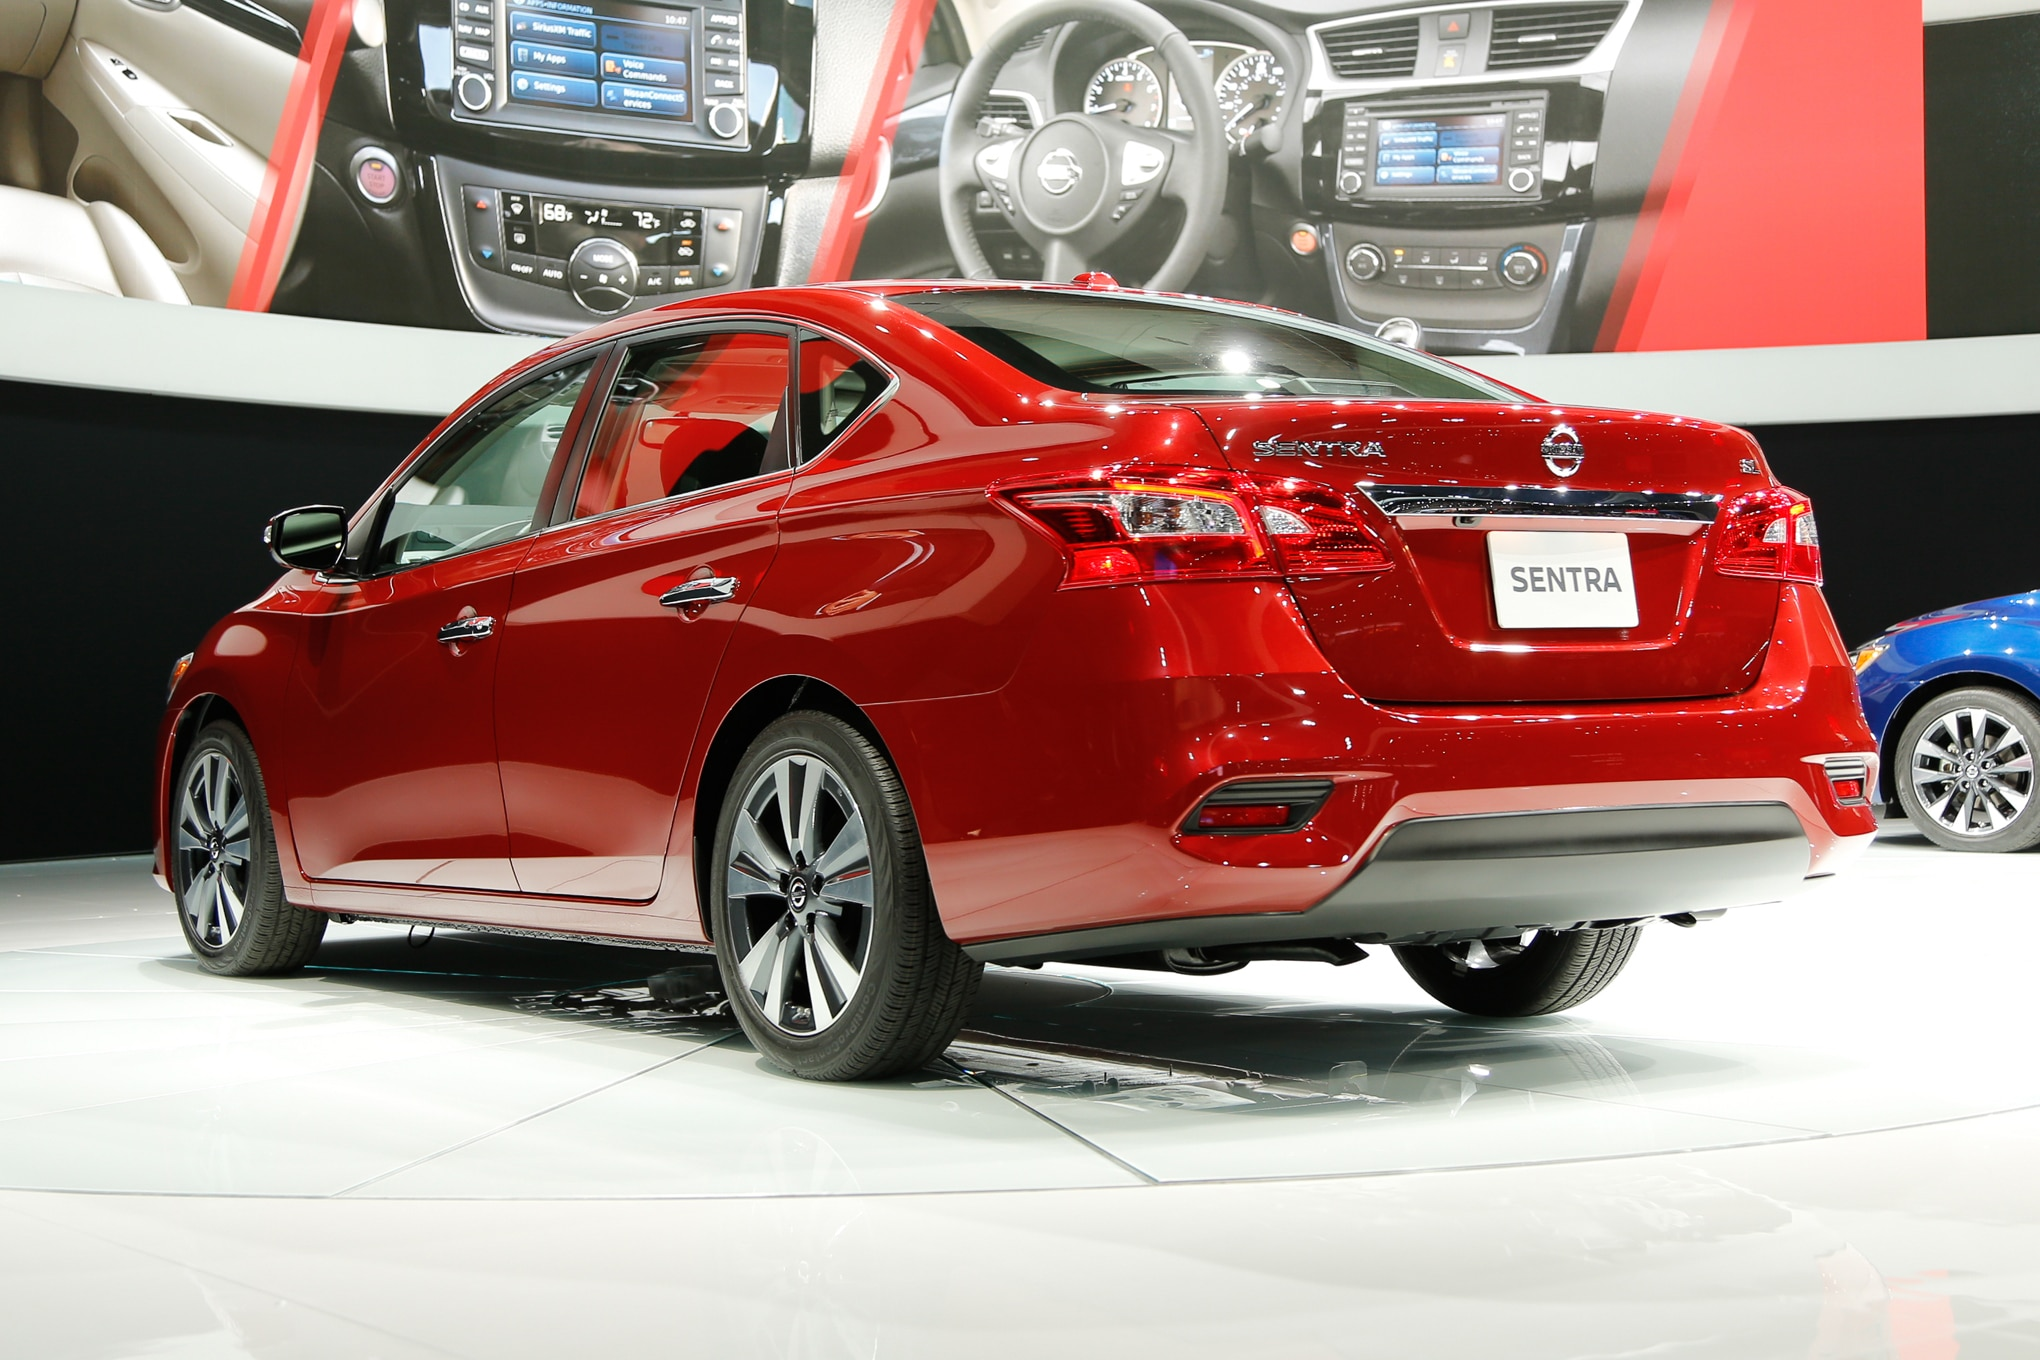 2016 Nissan Sentra Refreshed Looks More Like Altima And